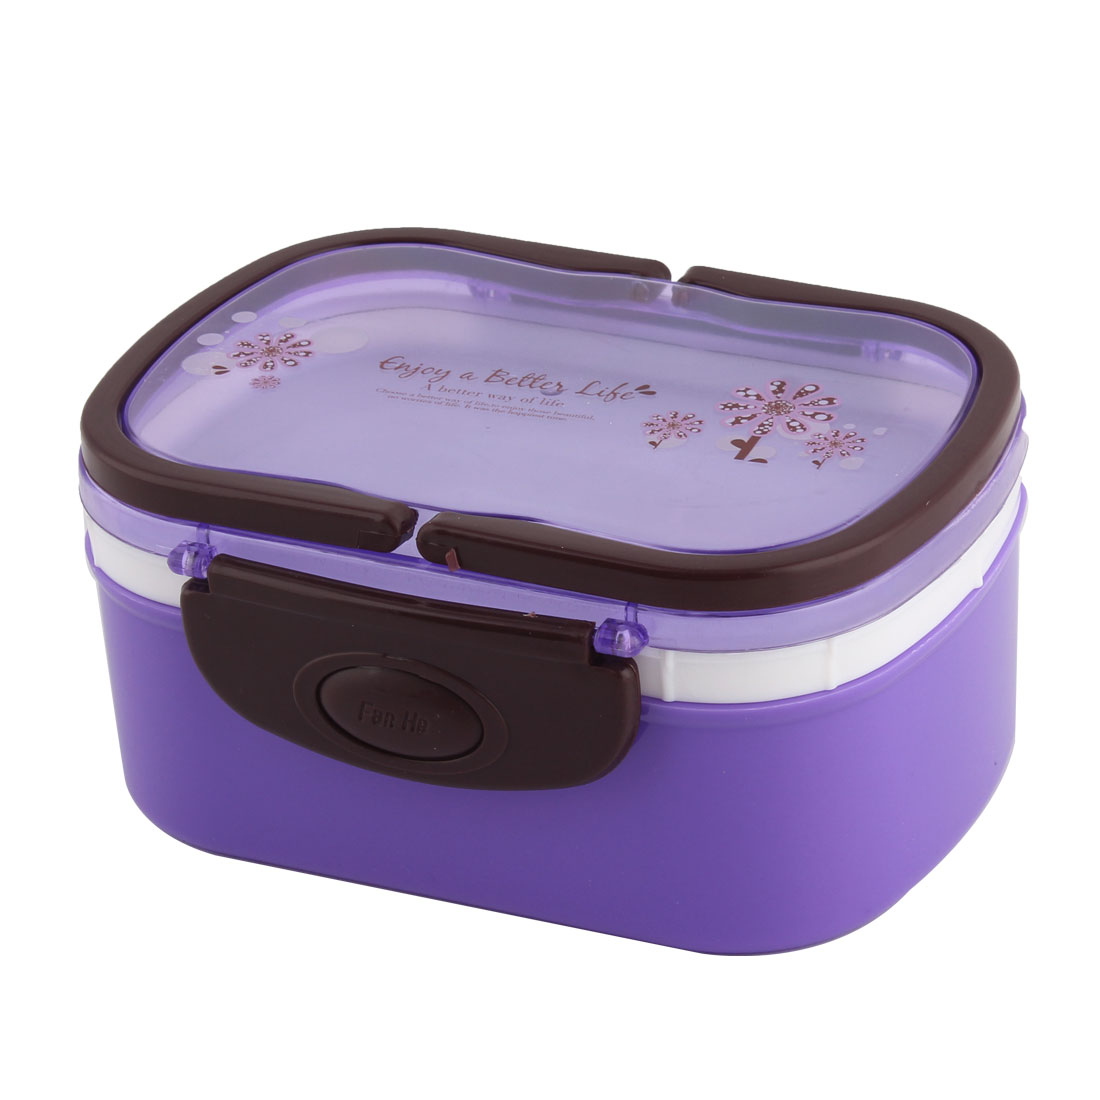 Household Outdoor Plastic Flower Pattern Handle Food Container Lunch Box Purple